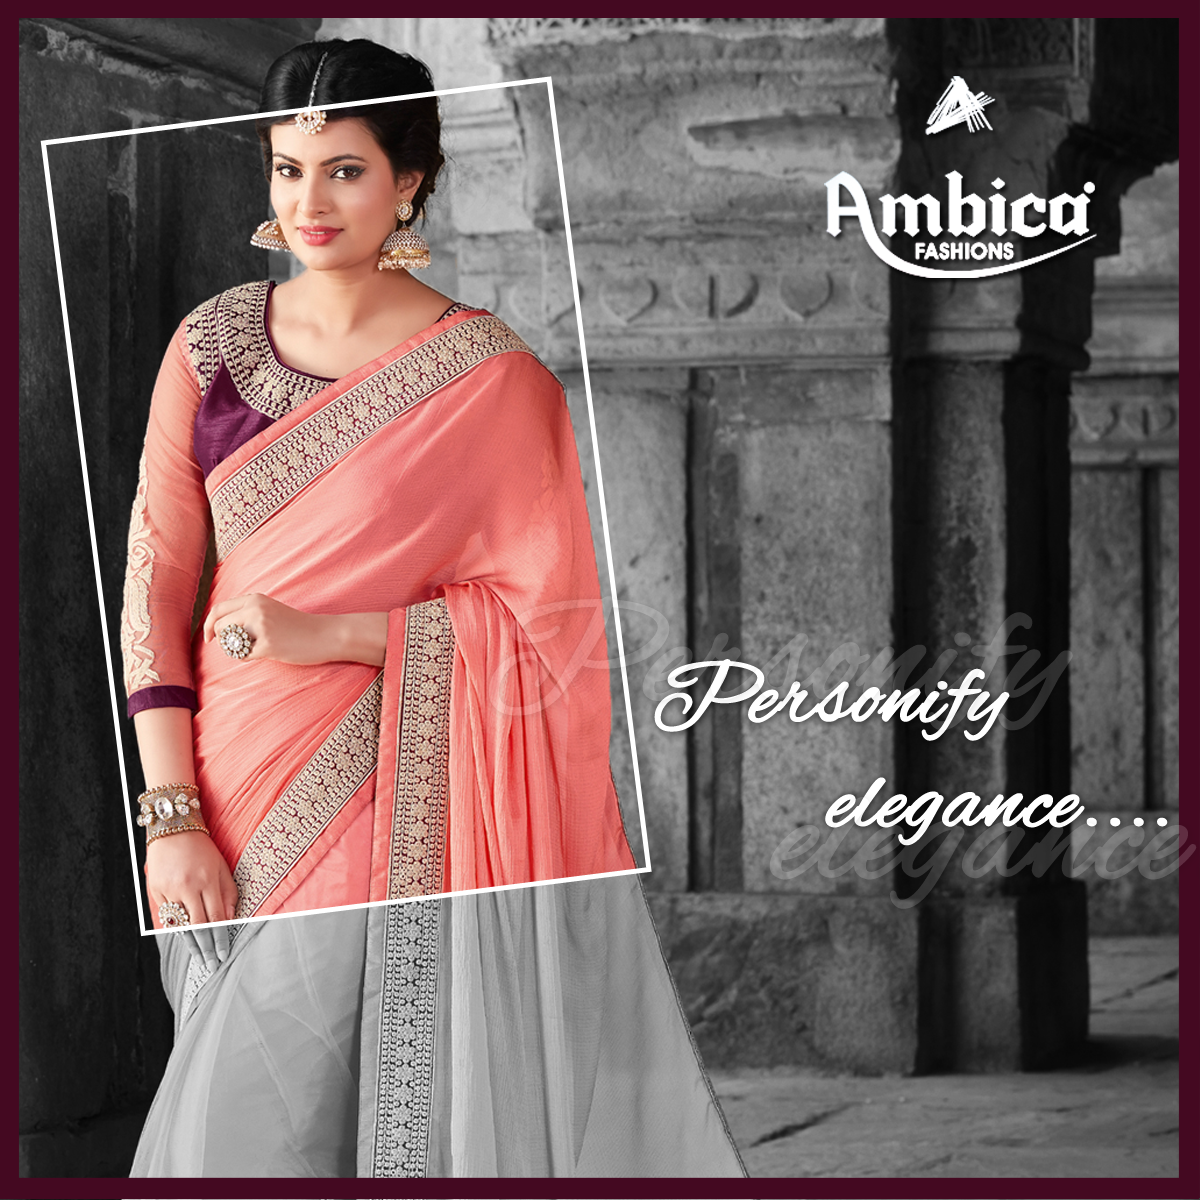 Personify elegance with Ambica Fab Design -- For more details contact us on: 99799-00476 | www.ambicasurat.in #SareesInAmbica #SareesCollection #FashionableSarees #AmbicaCollection